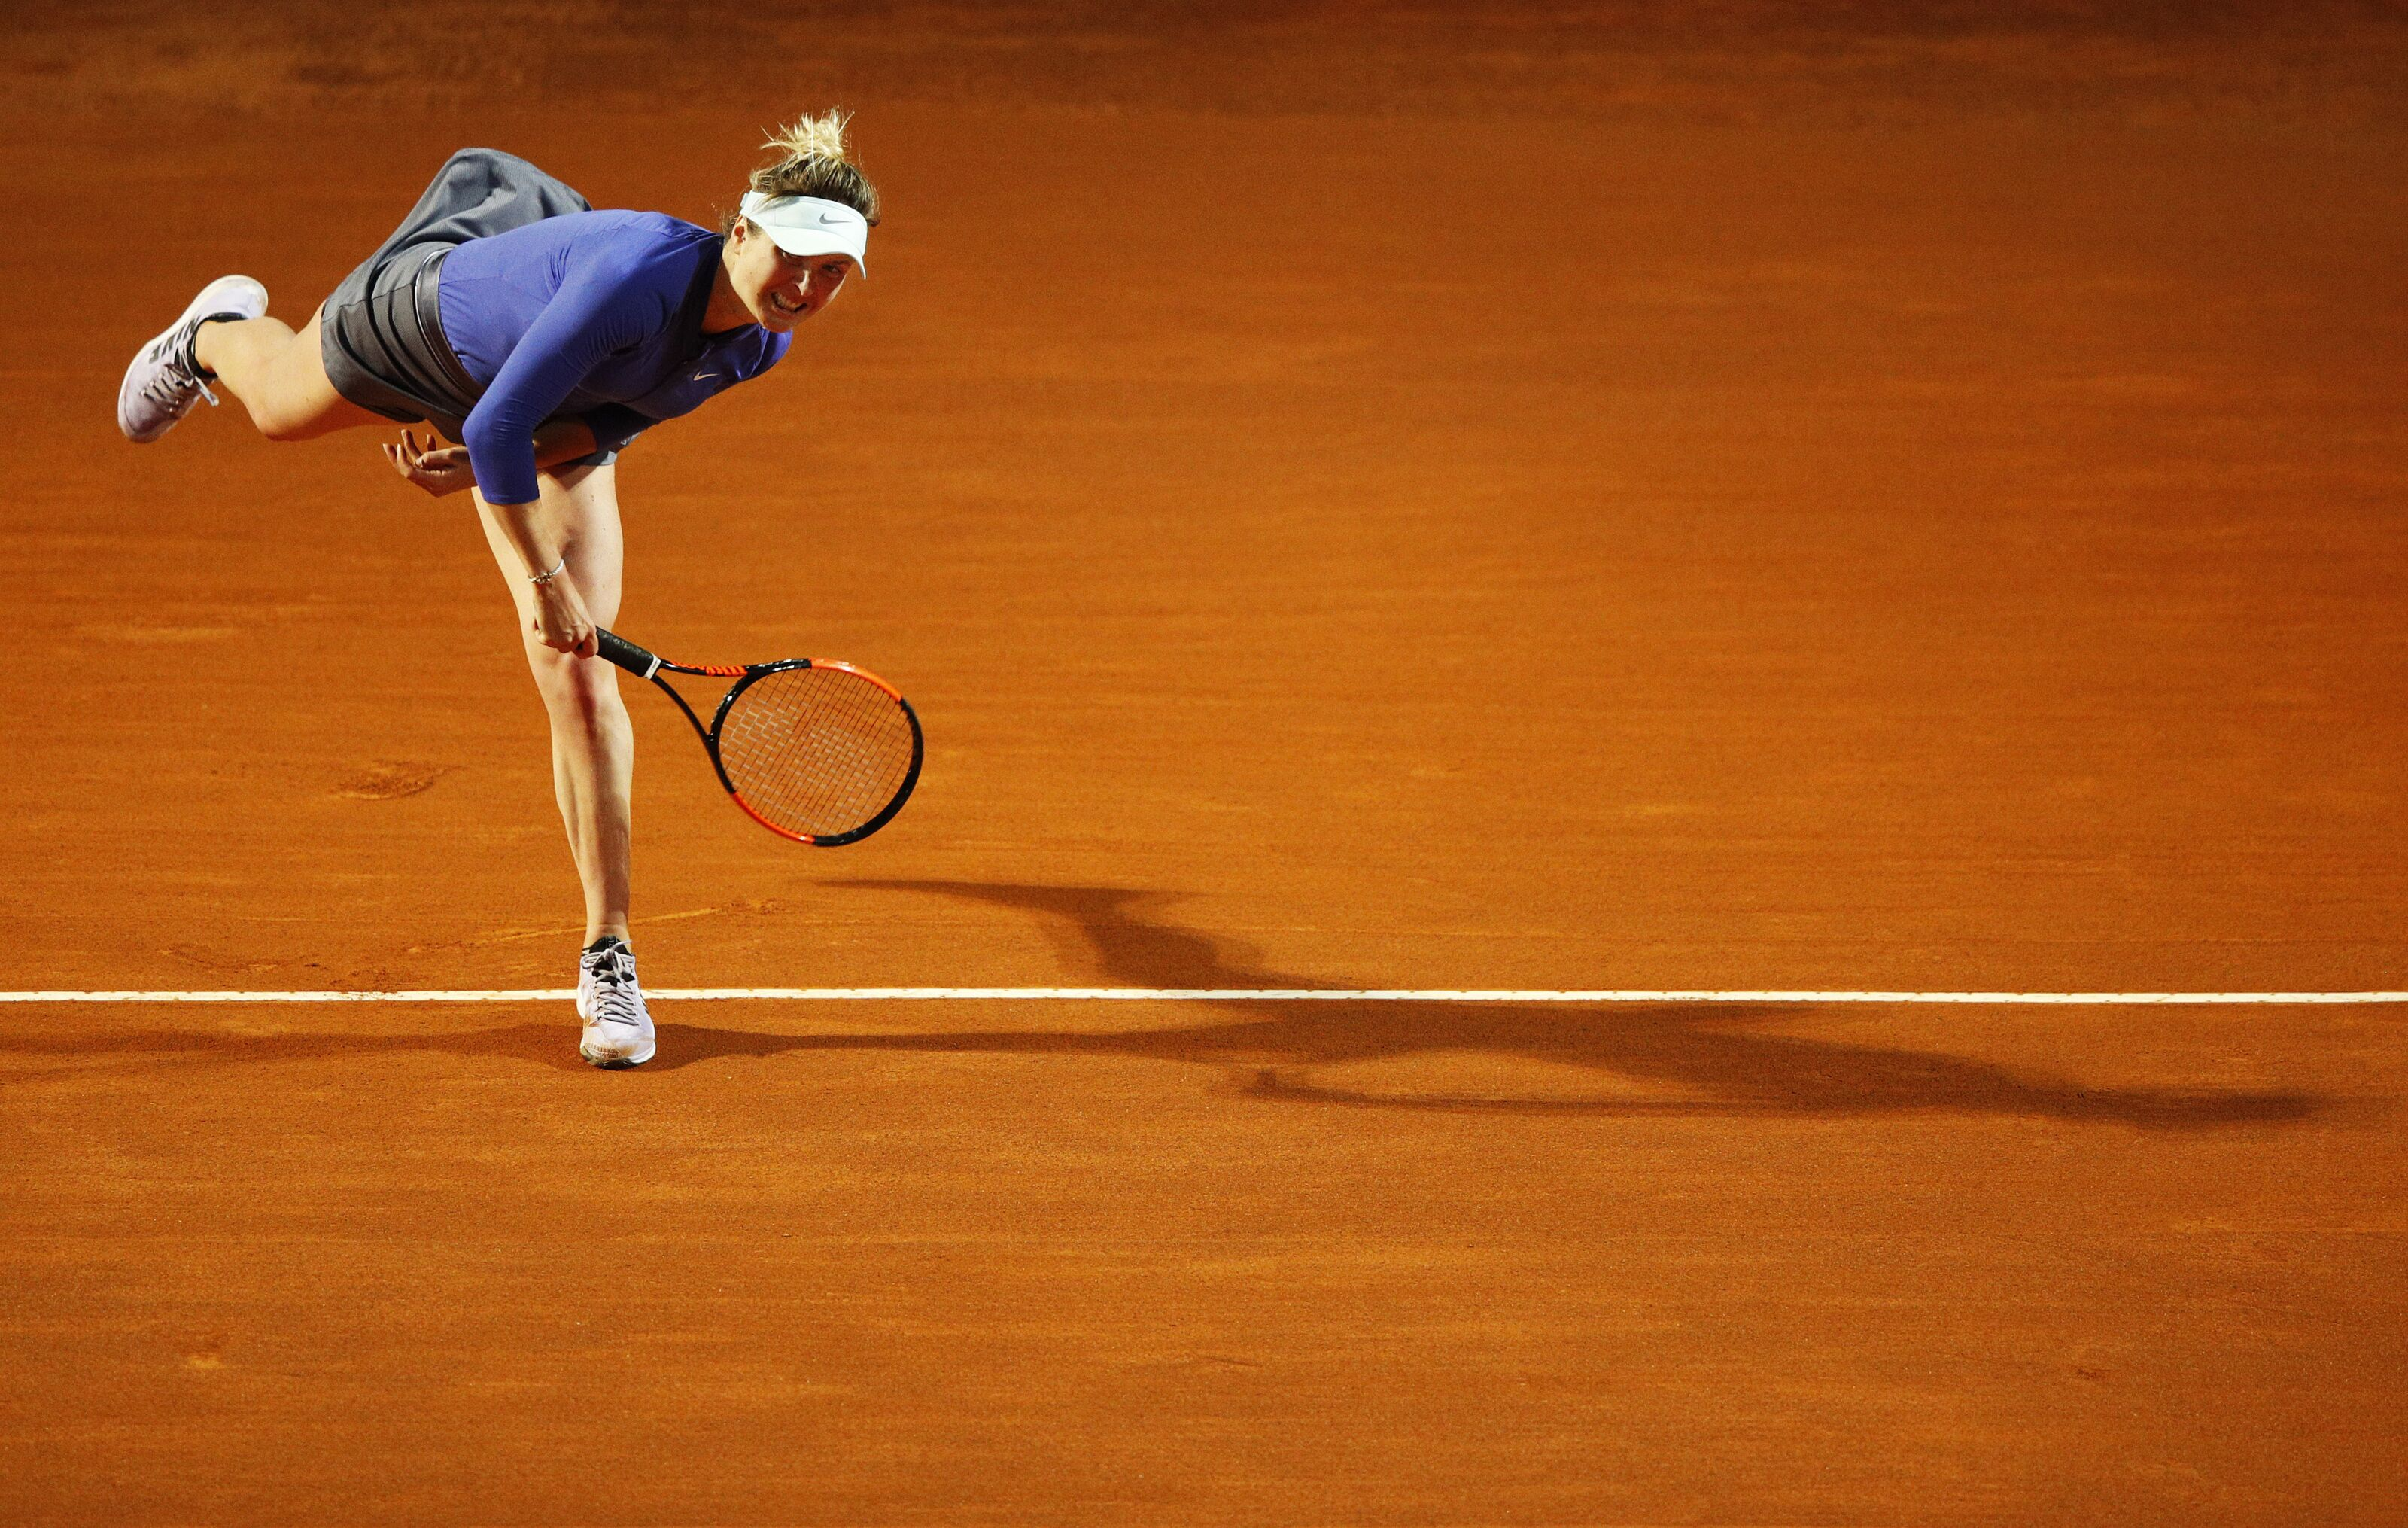 Elina Svitolina OUSTED, 2019 Italian Open field now wide open